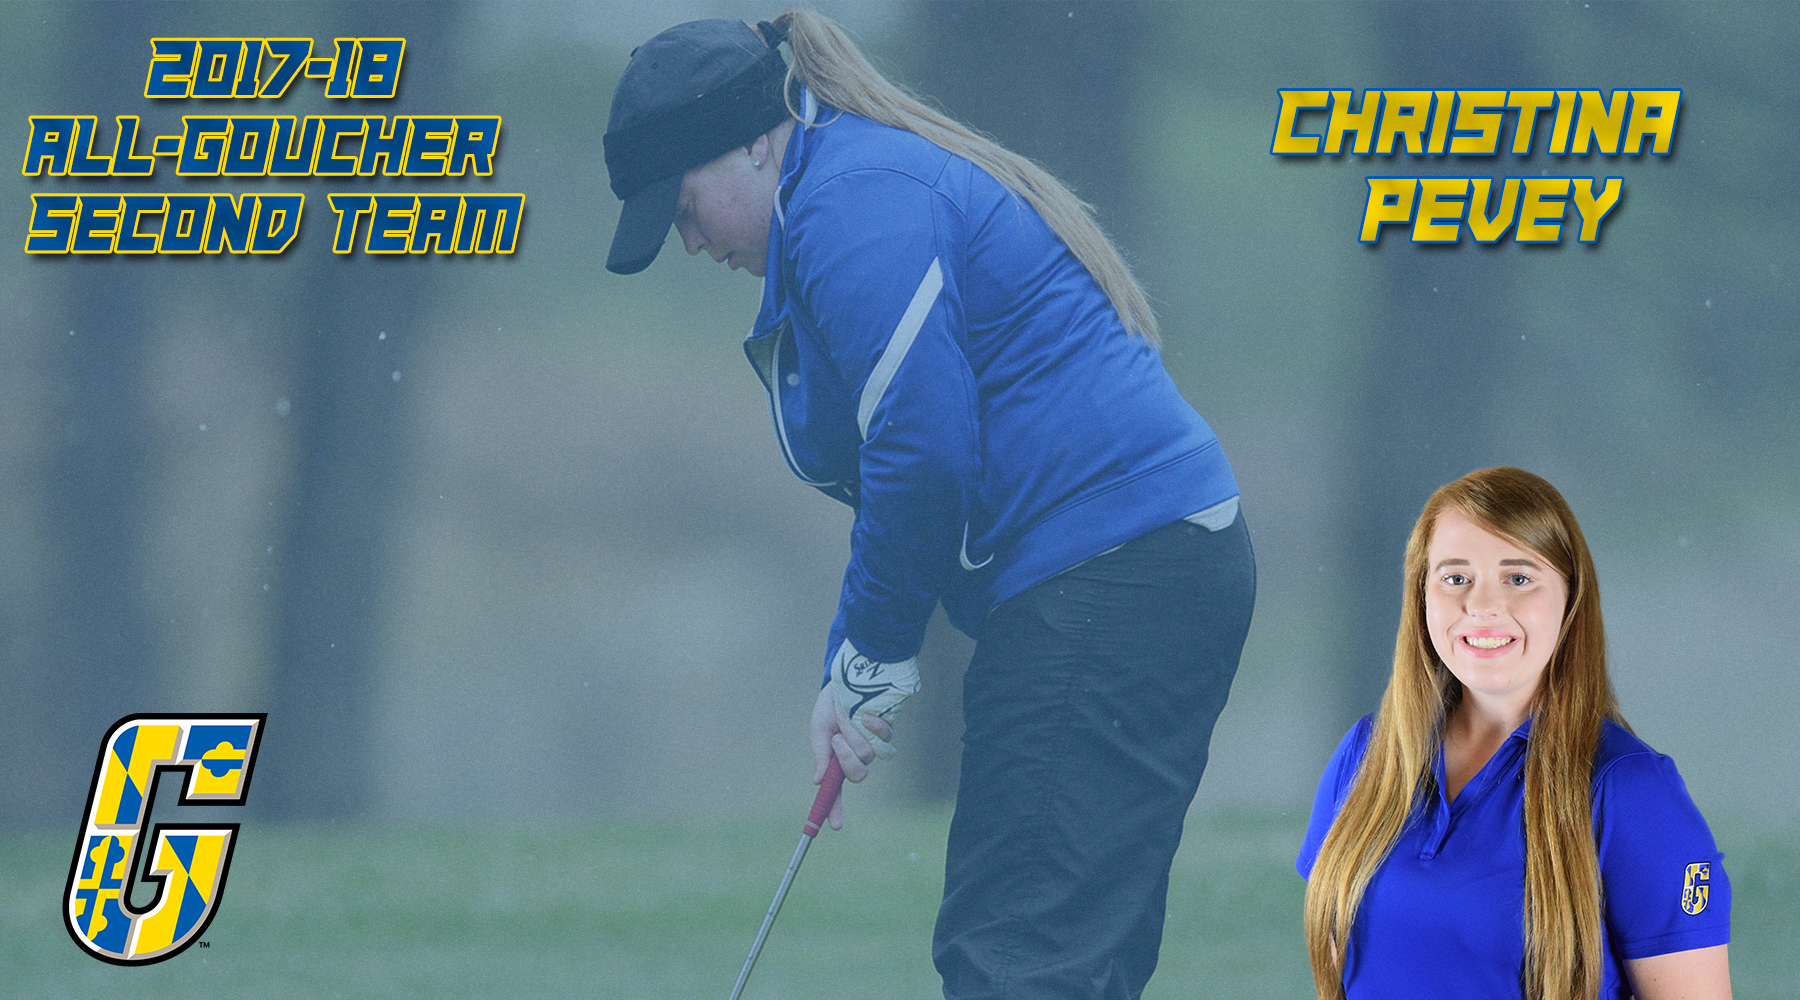 All-Goucher Second Team Selection: Women's Golf's Christina Pevey